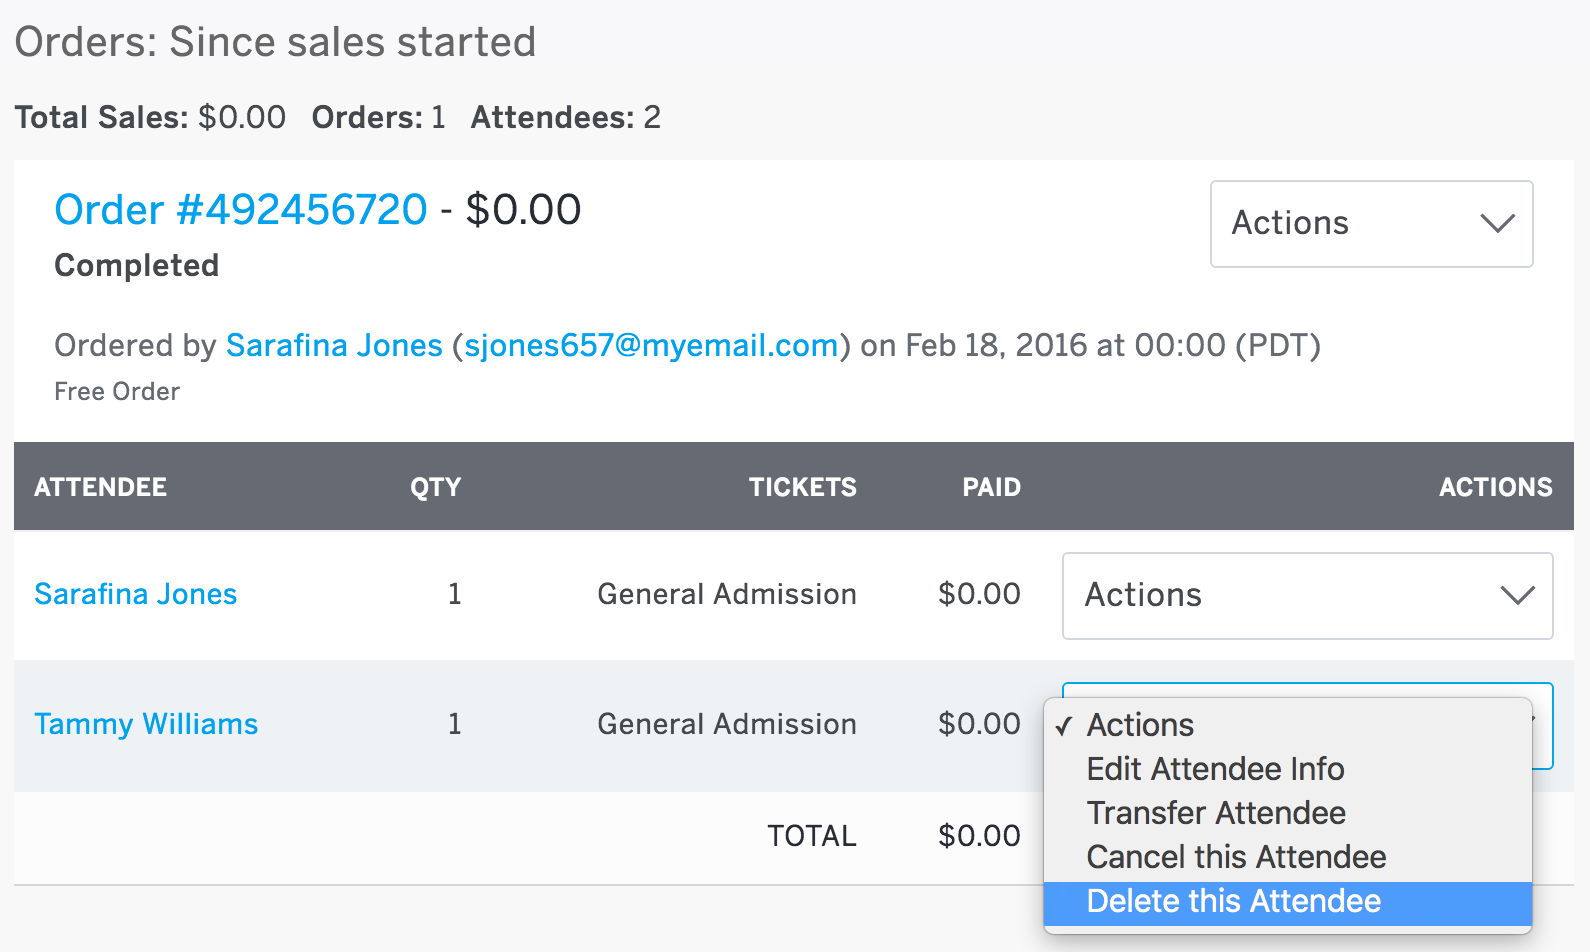 The Actions menu is located to the right of the attendee-level information. Delete this Order is the third actionable option in the drop-down menu, and is the start of the attendee deletion process.